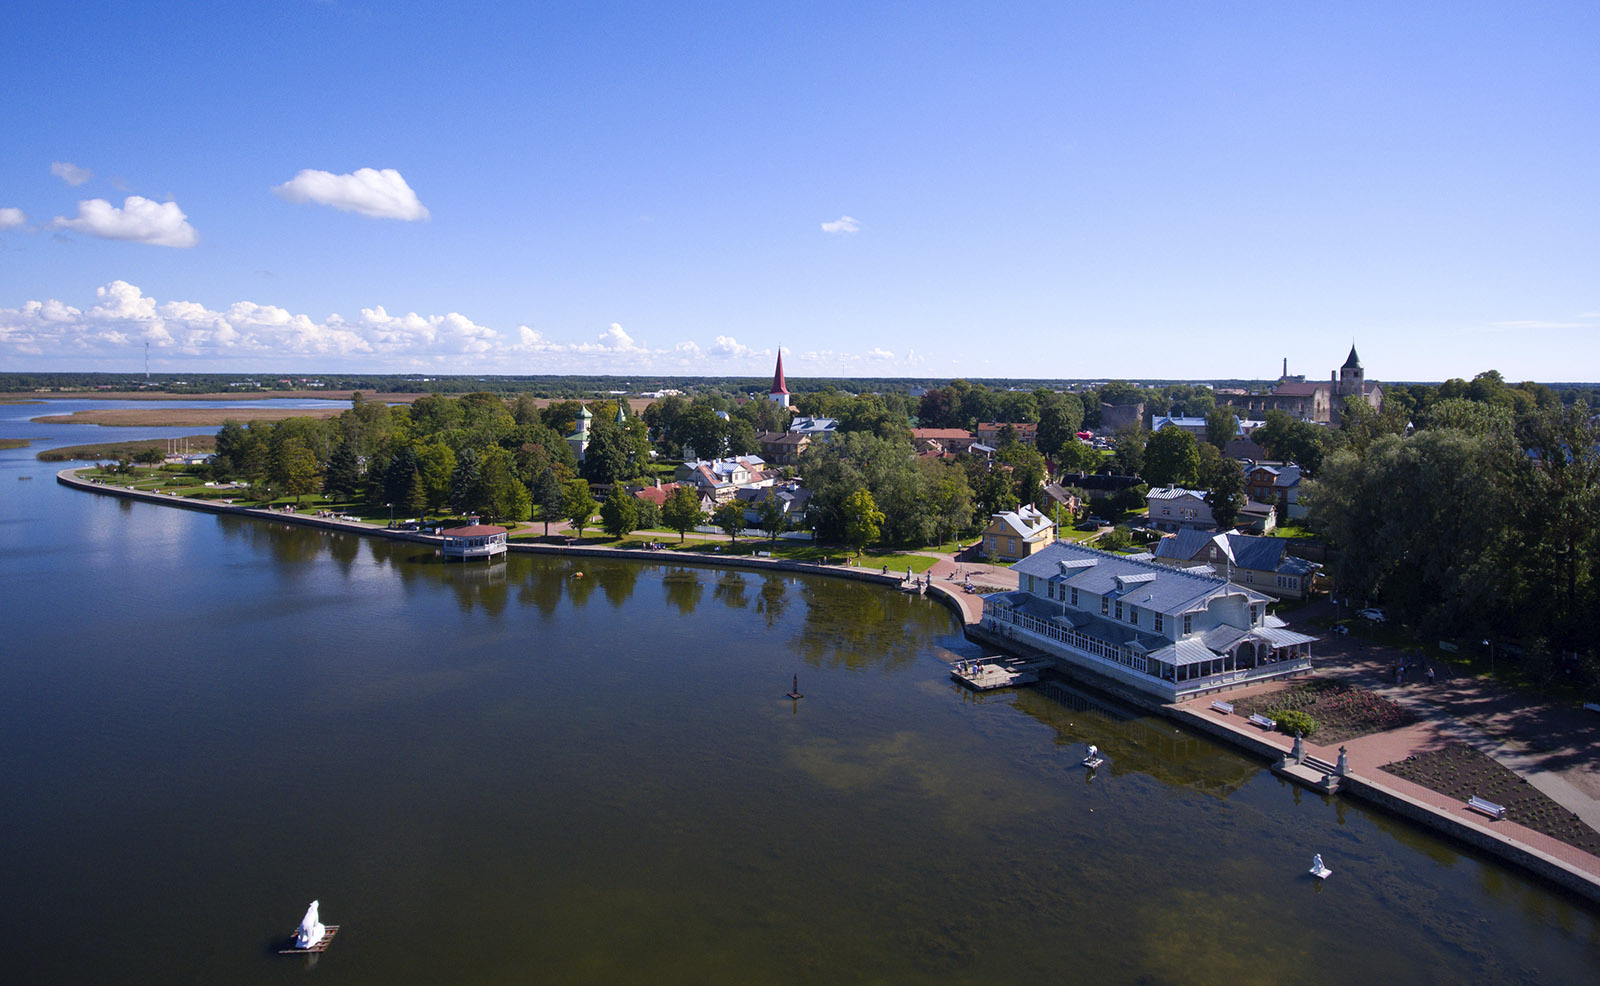 Summer in Haapsalu, Estonia: Seaside Drone Flight From the Old Railway Station to the Promenade